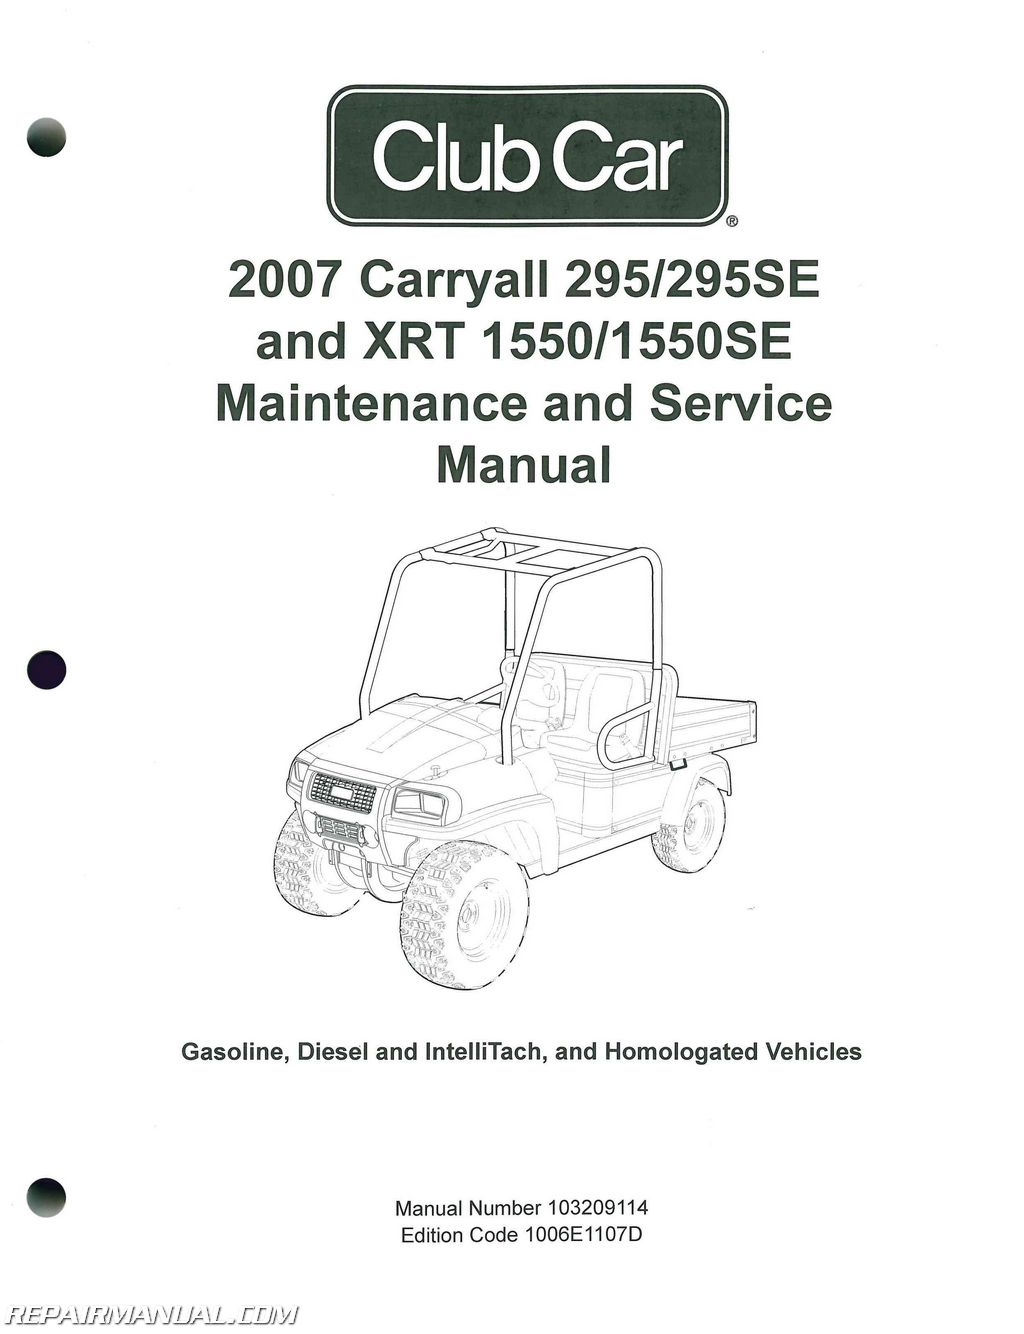 hight resolution of 2007 club car carryall service manual 295 295se xrt 1550 club car xrt 1550 wiring diagram